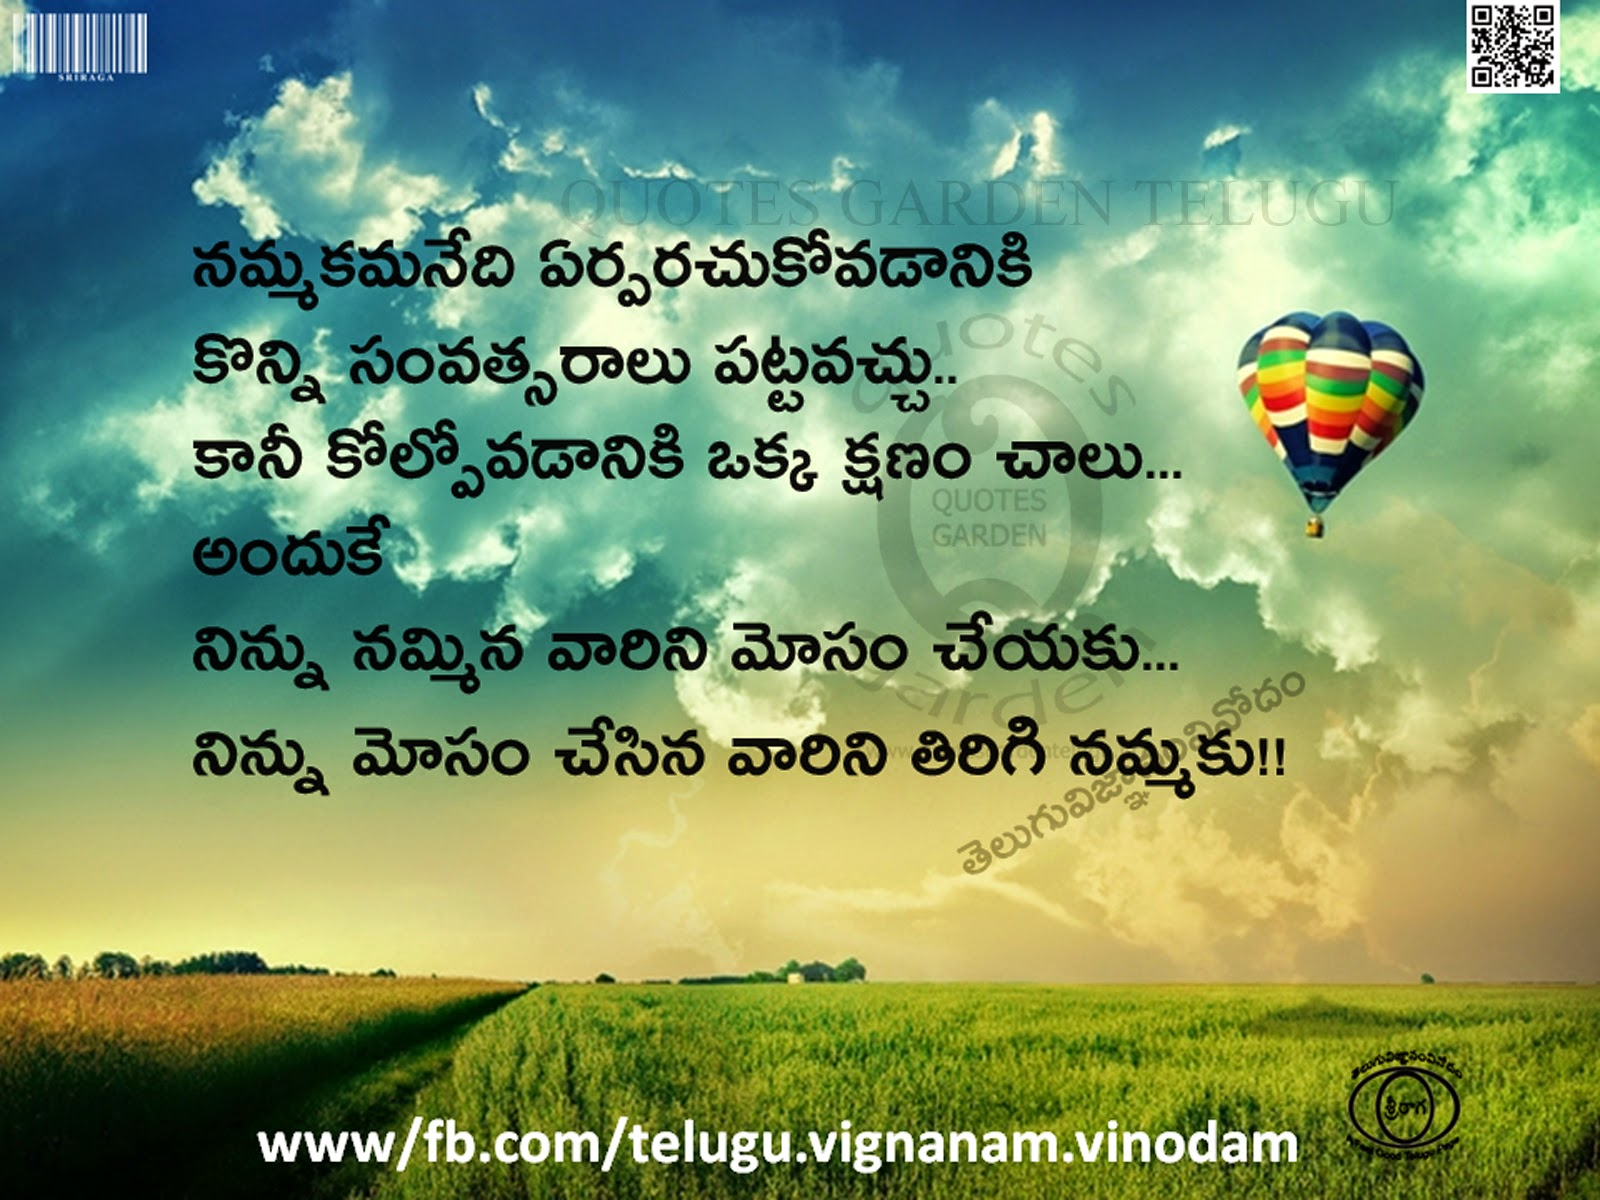 Heart touching telugu quotes about confidence 161014